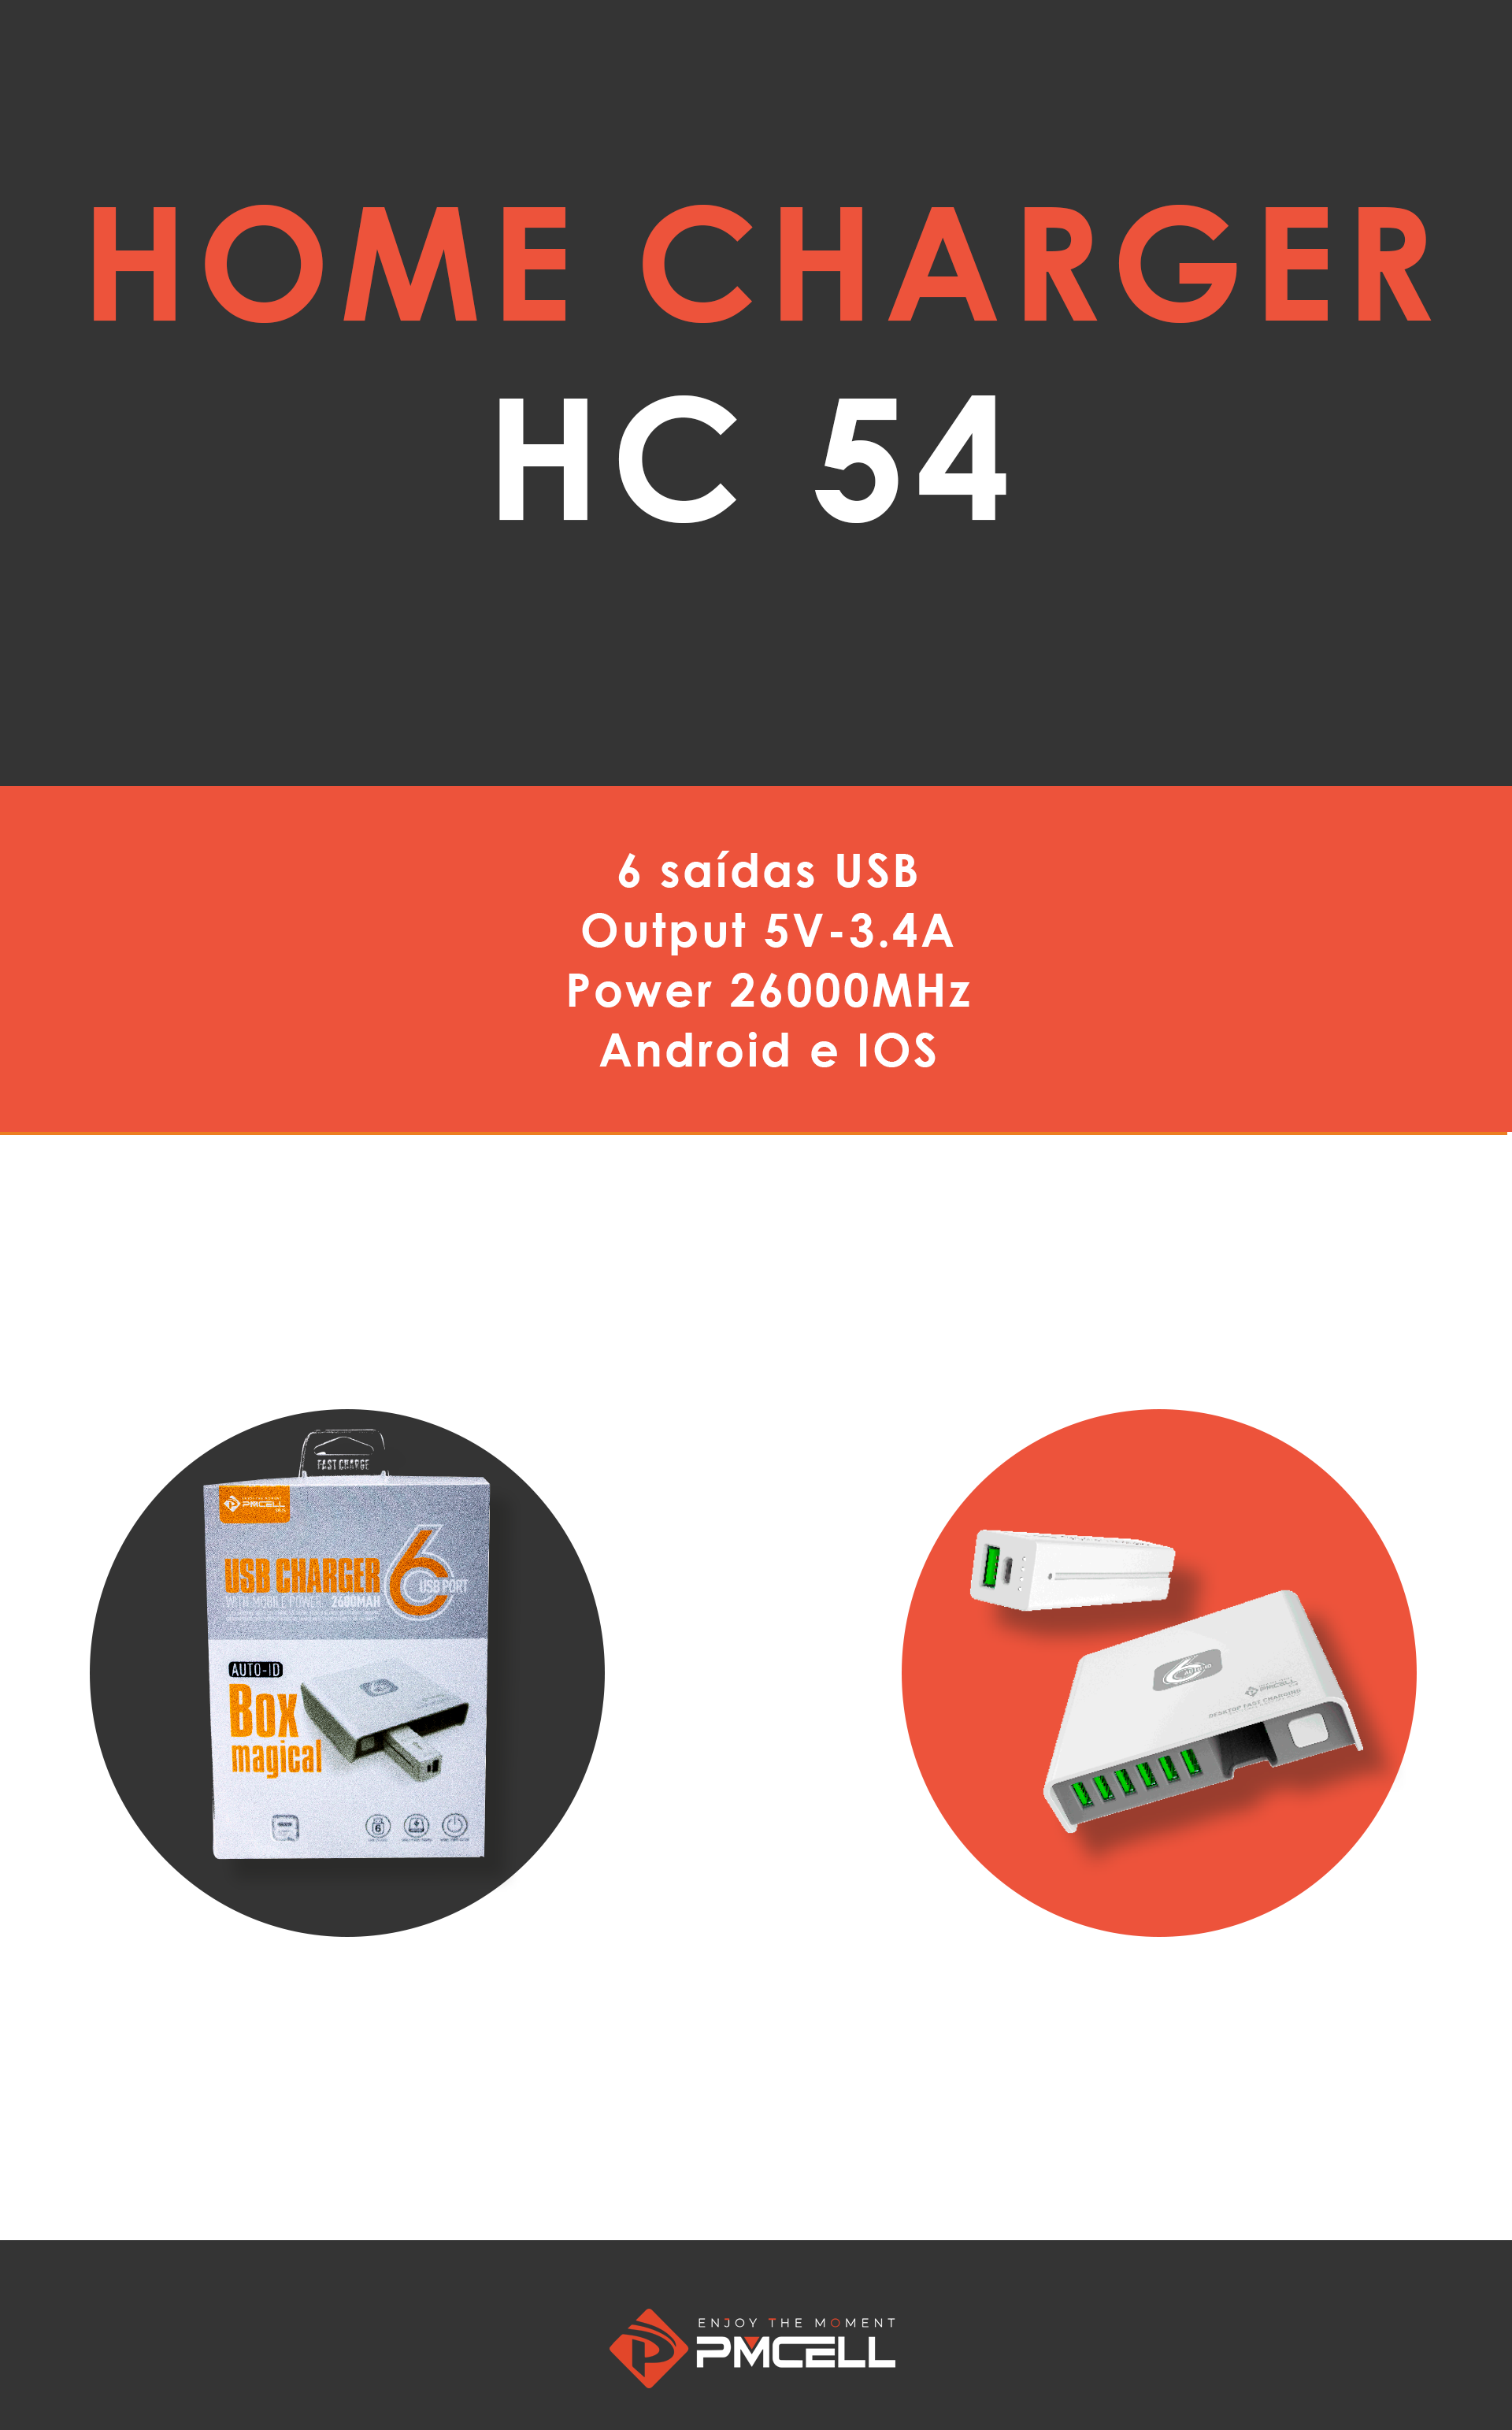 Home Charger HC 54 Image